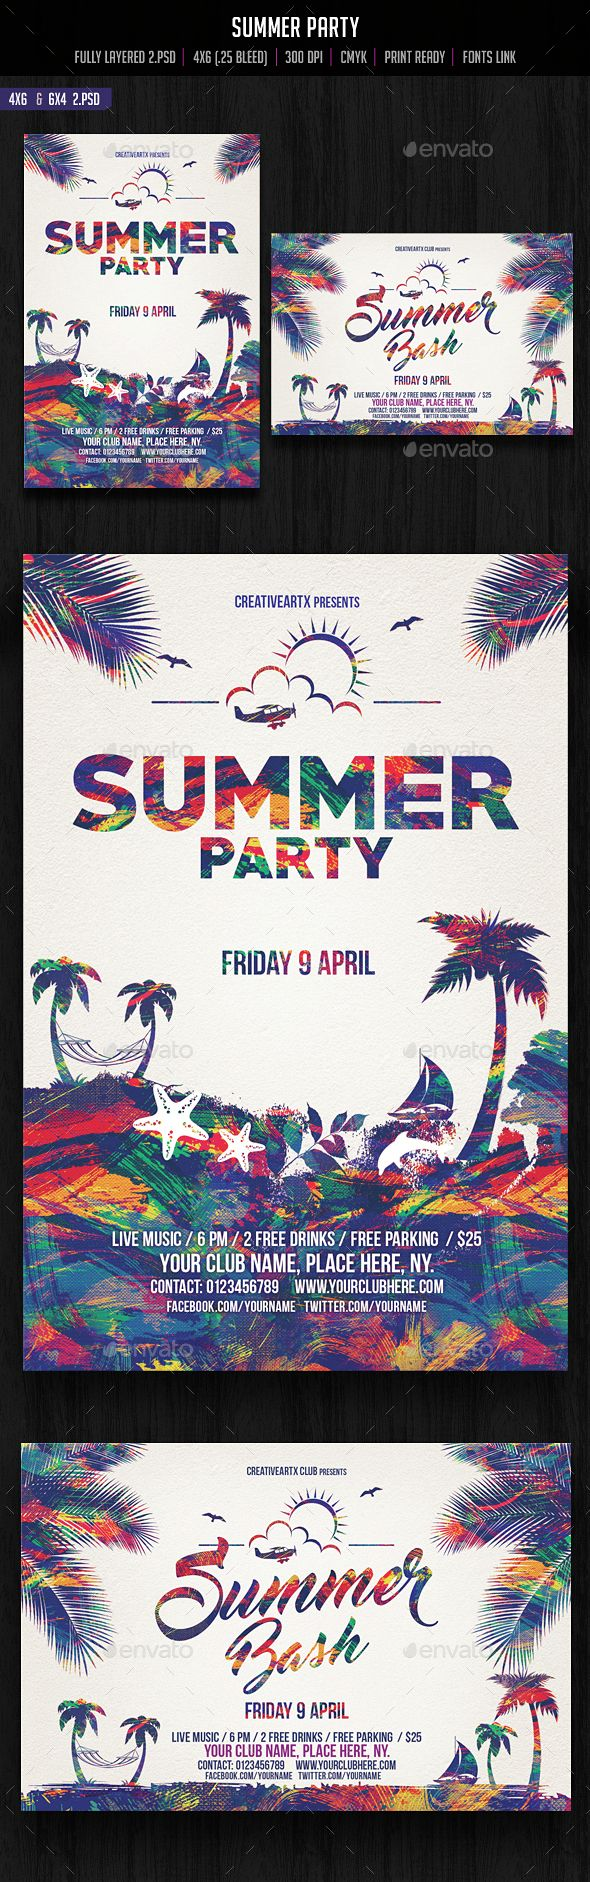 Summer Party Flyer Template PSD. Download here…